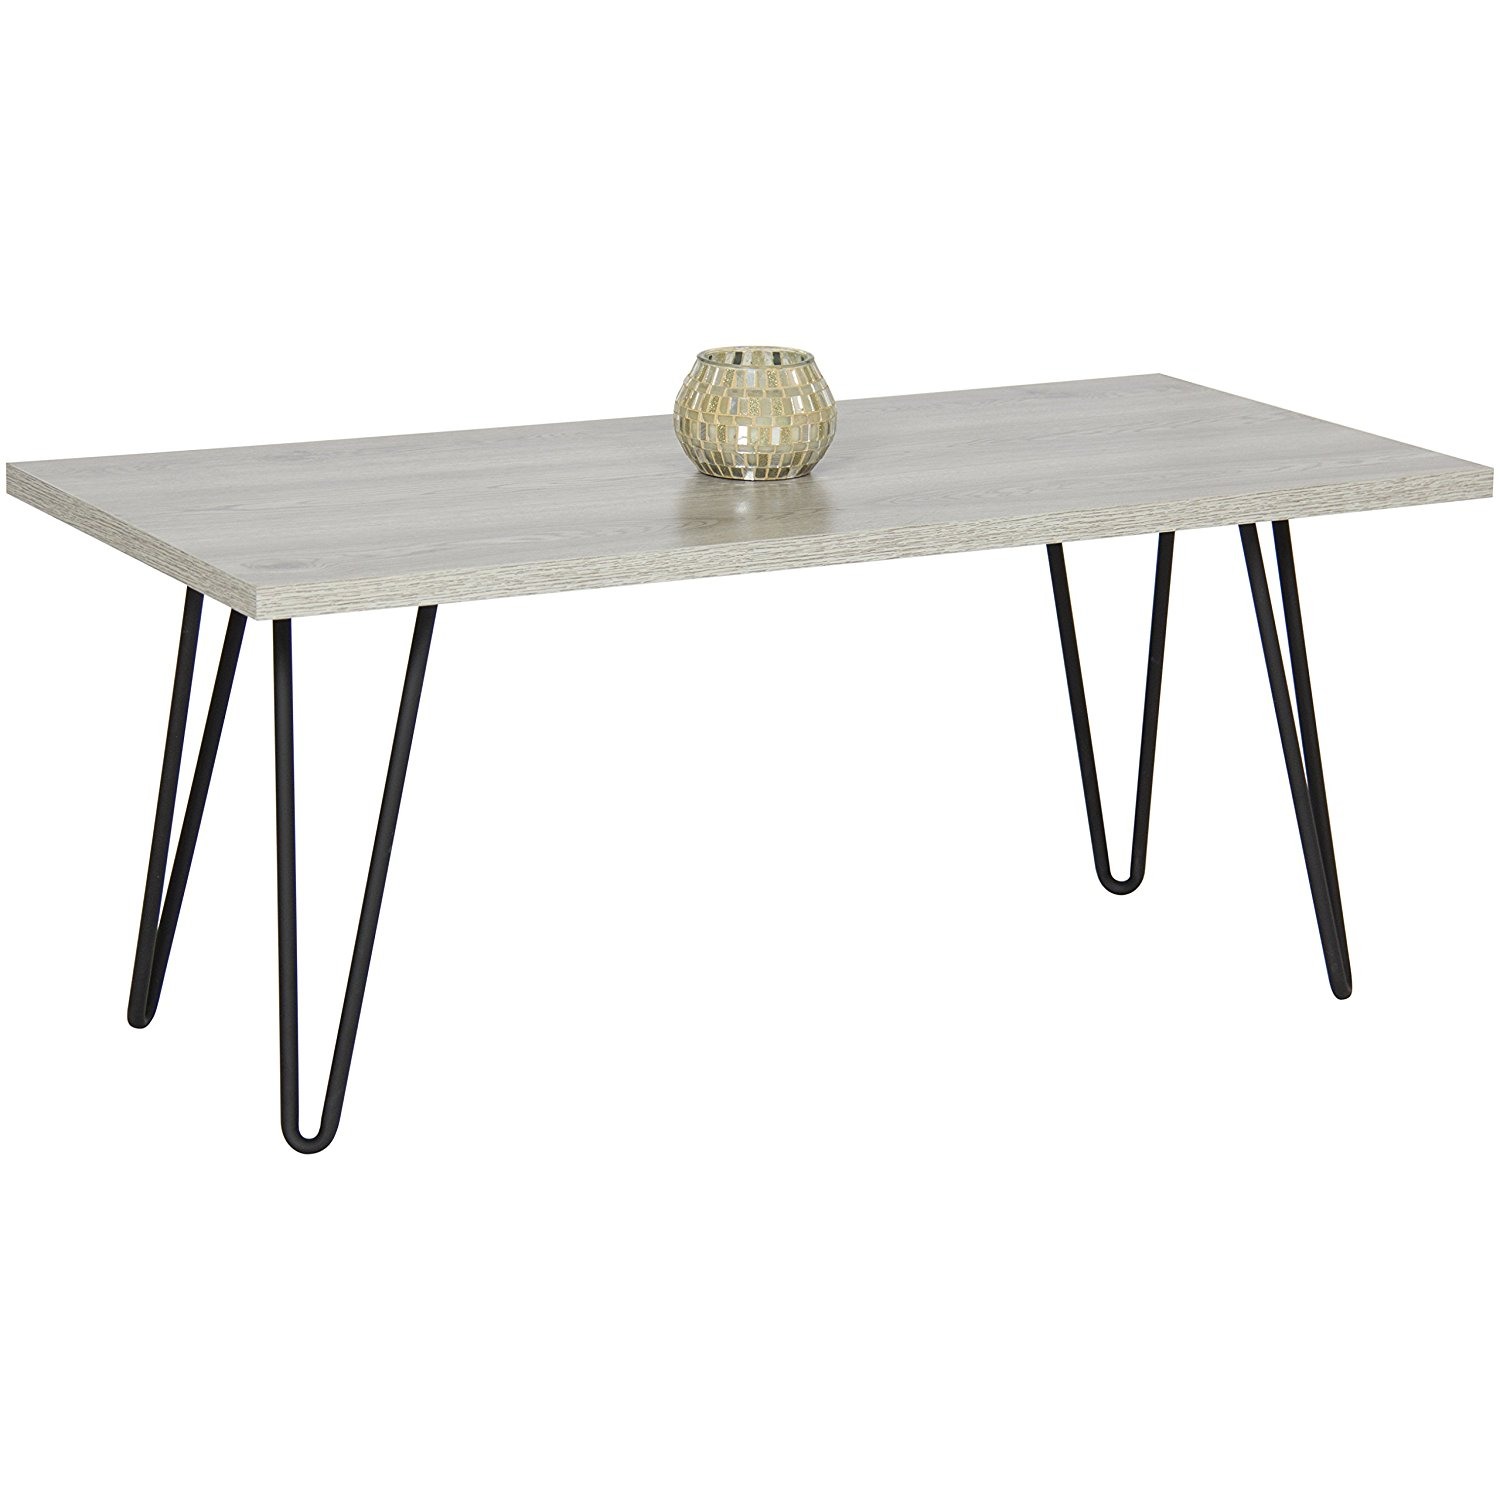 Cheap coffee tables under 100 that work for every style for Cheap hairpin legs